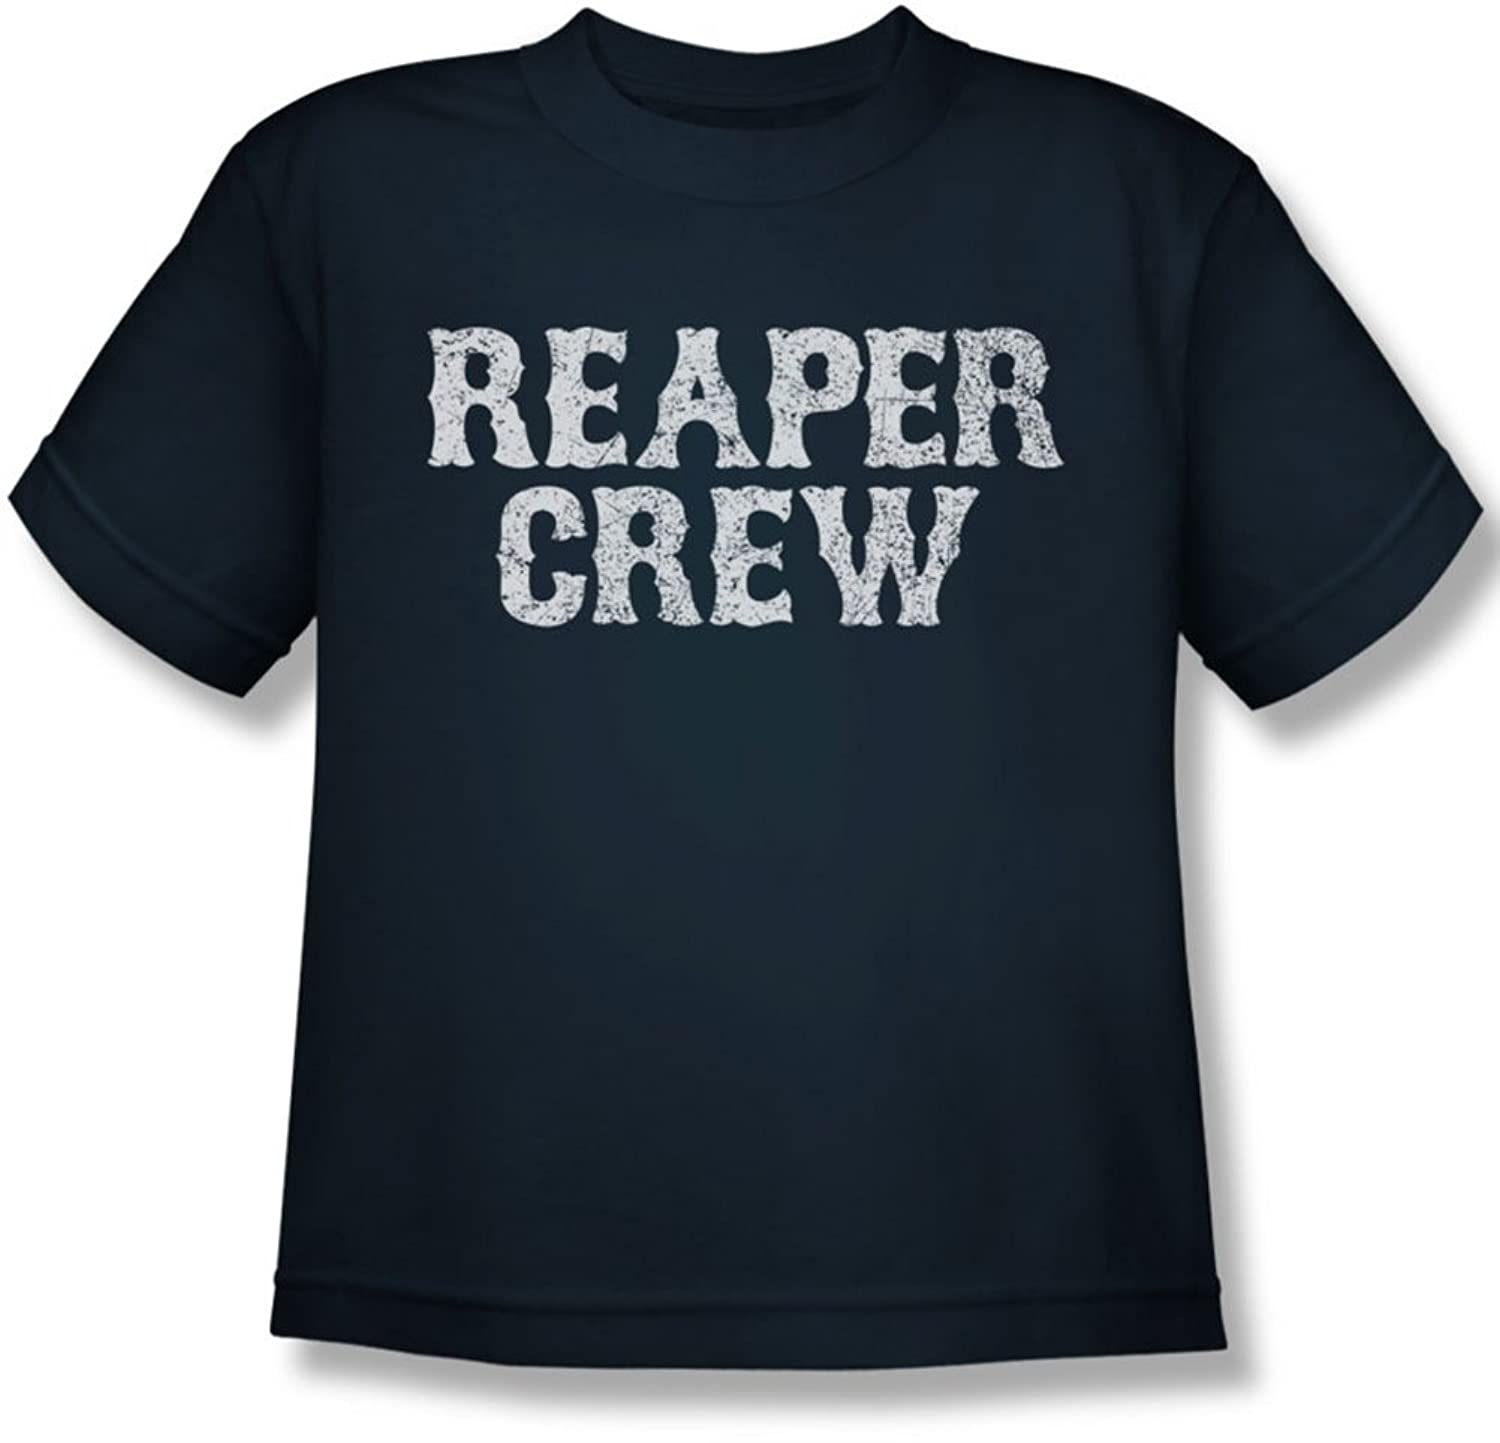 Sons Of Anarchy - Youth Reaper Crew T-Shirt